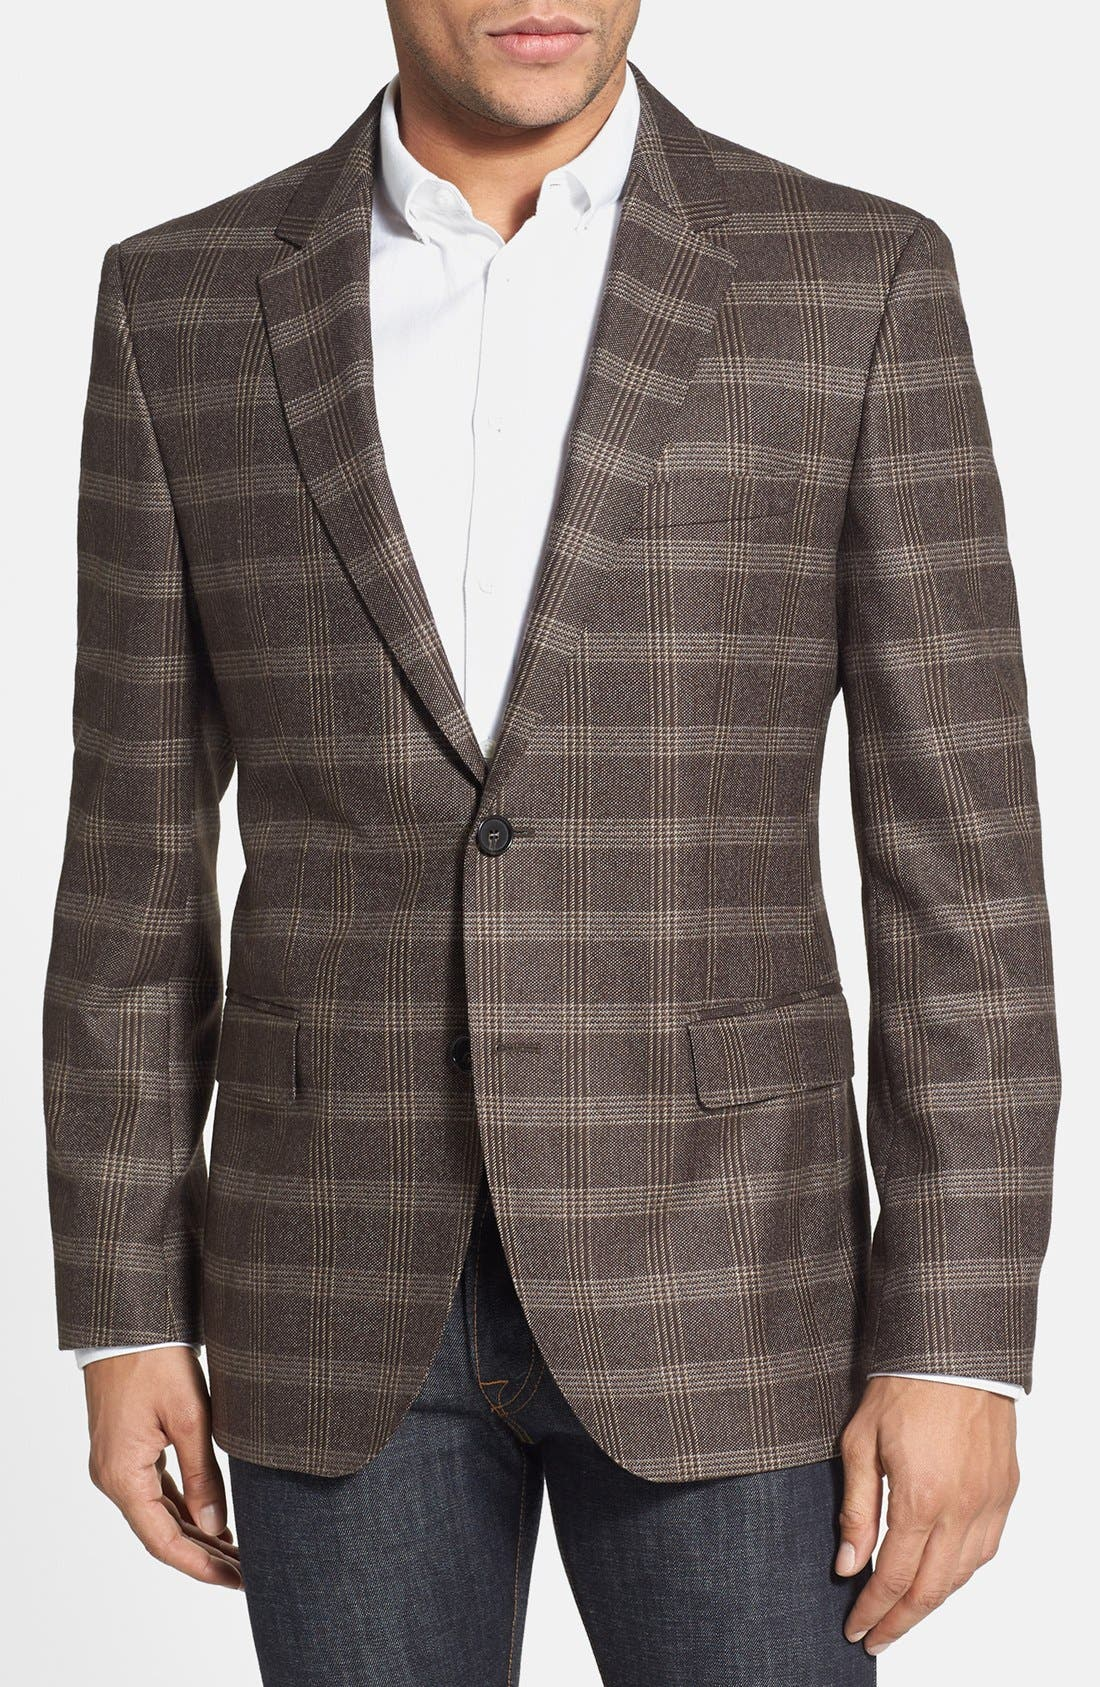 Alternate Image 1 Selected - BOSS HUGO BOSS 'The James' Trim Fit Plaid Sportcoat